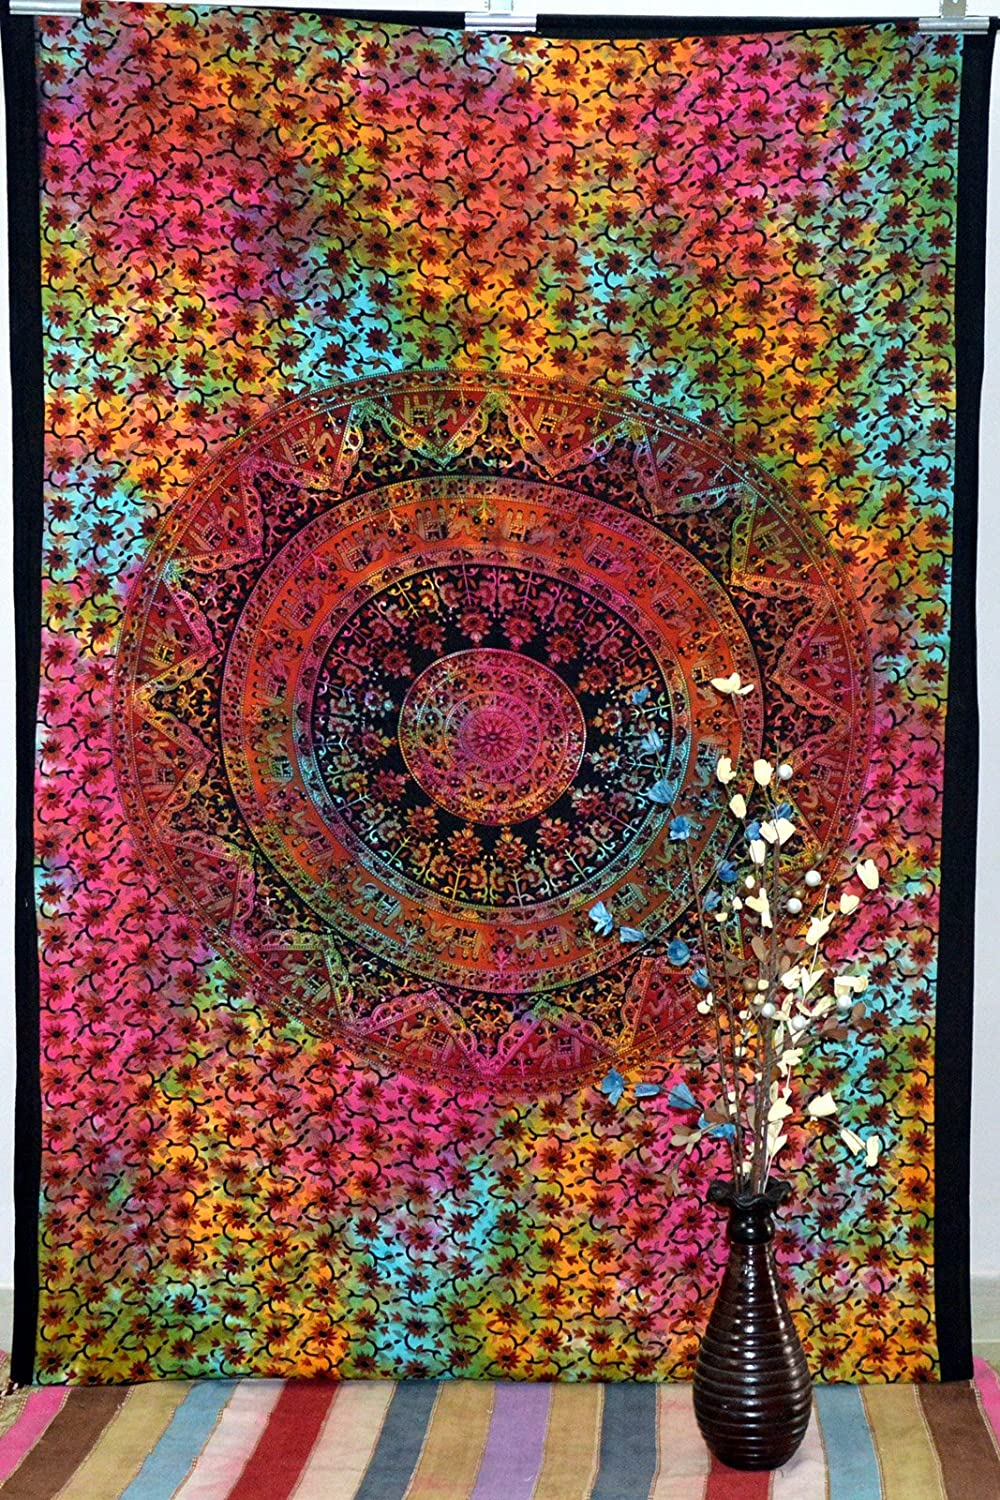 Indian Mandala Wall Twin Tapestry Throw Tapestries Hippie Wall Hanging Bed Cover Art B019QMUP6G